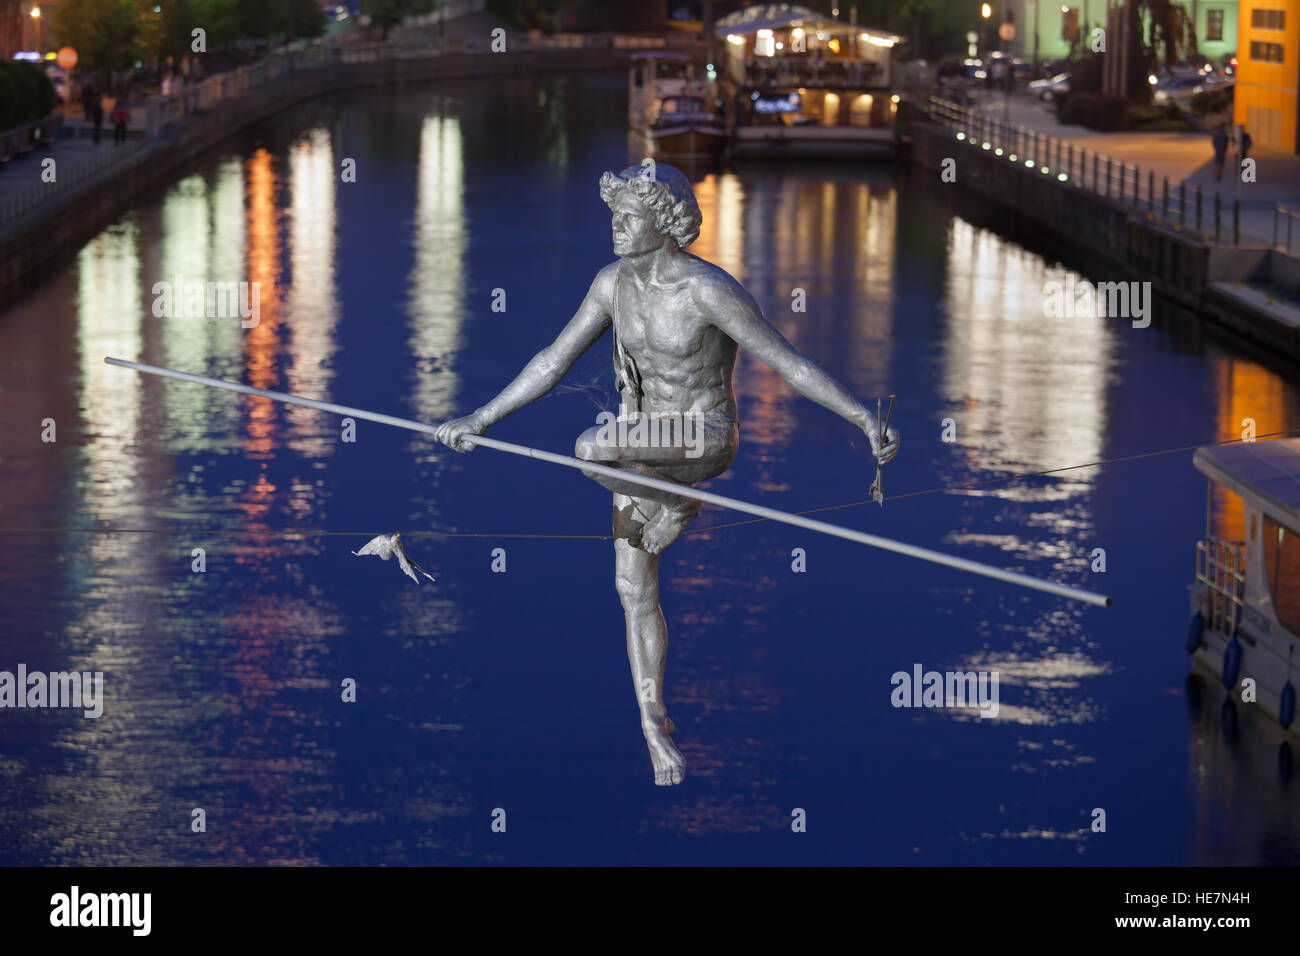 """""""Man crossing the River"""" at night, balancing sculpture by Jerzy Kedziora in Bydgoszcz, Poland, commemorates the Stock Photo"""